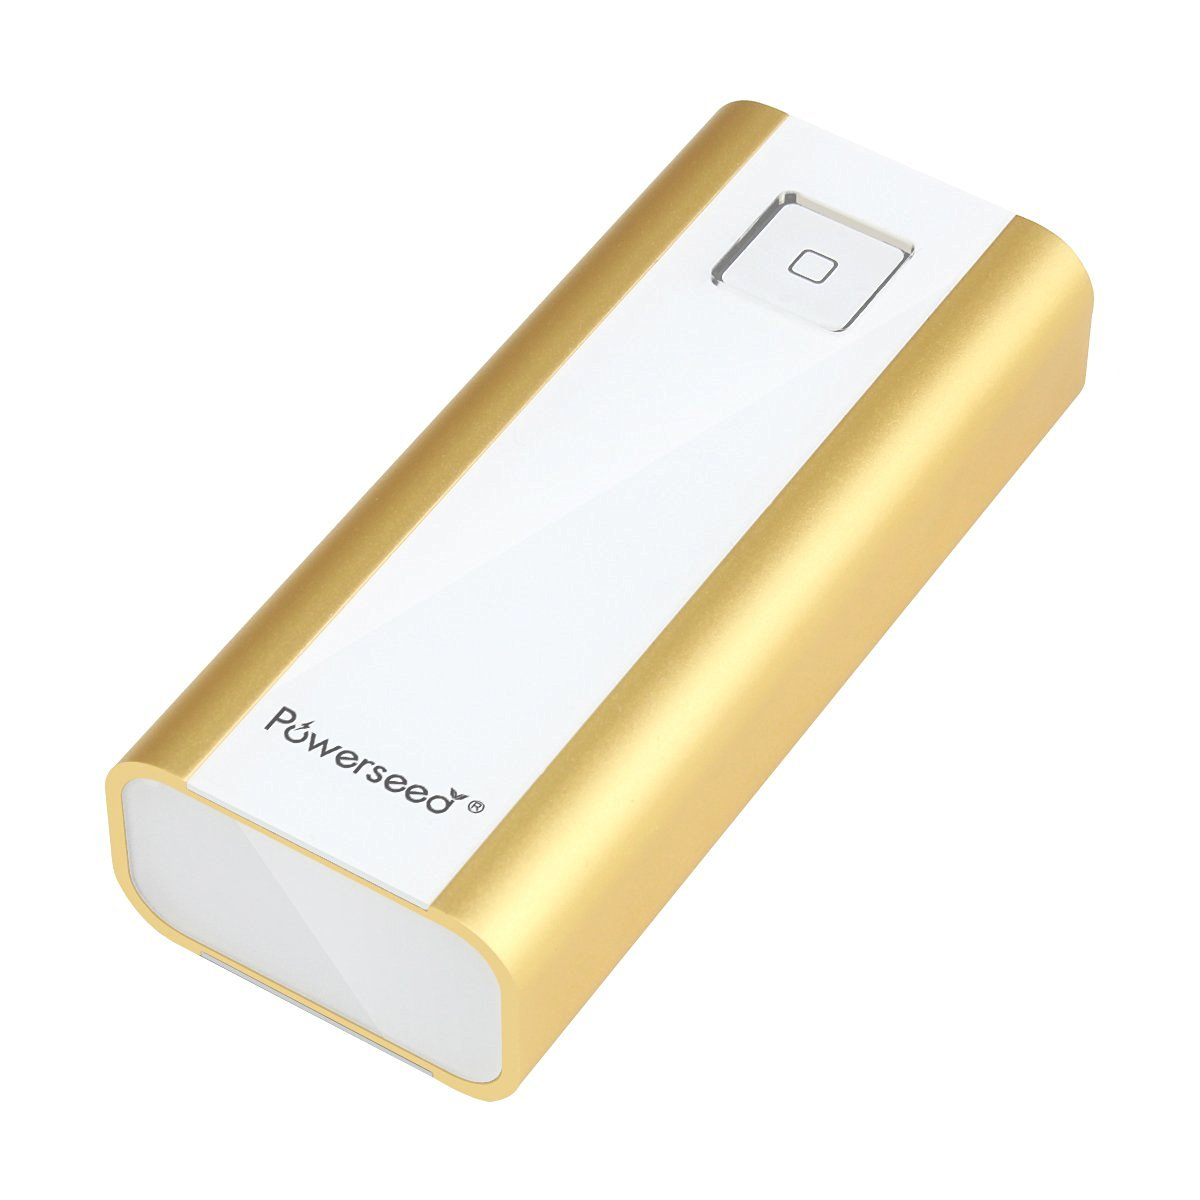 Powerseed Bank / Executive Pro PS4800 Gold Power Bank USB Portable Charger with LED flashlight for Samsung Galaxy S6, S5, Samsung Gear, Note 4, Apple Watch, iPhone 4, iPhone 5, iPhone 5S, iPhone 5C, iPhone 6, iPhone 6 Plus, Android Phones, iPad, Android Tablet, Windows Tablet, Go Pro Hero Camera,